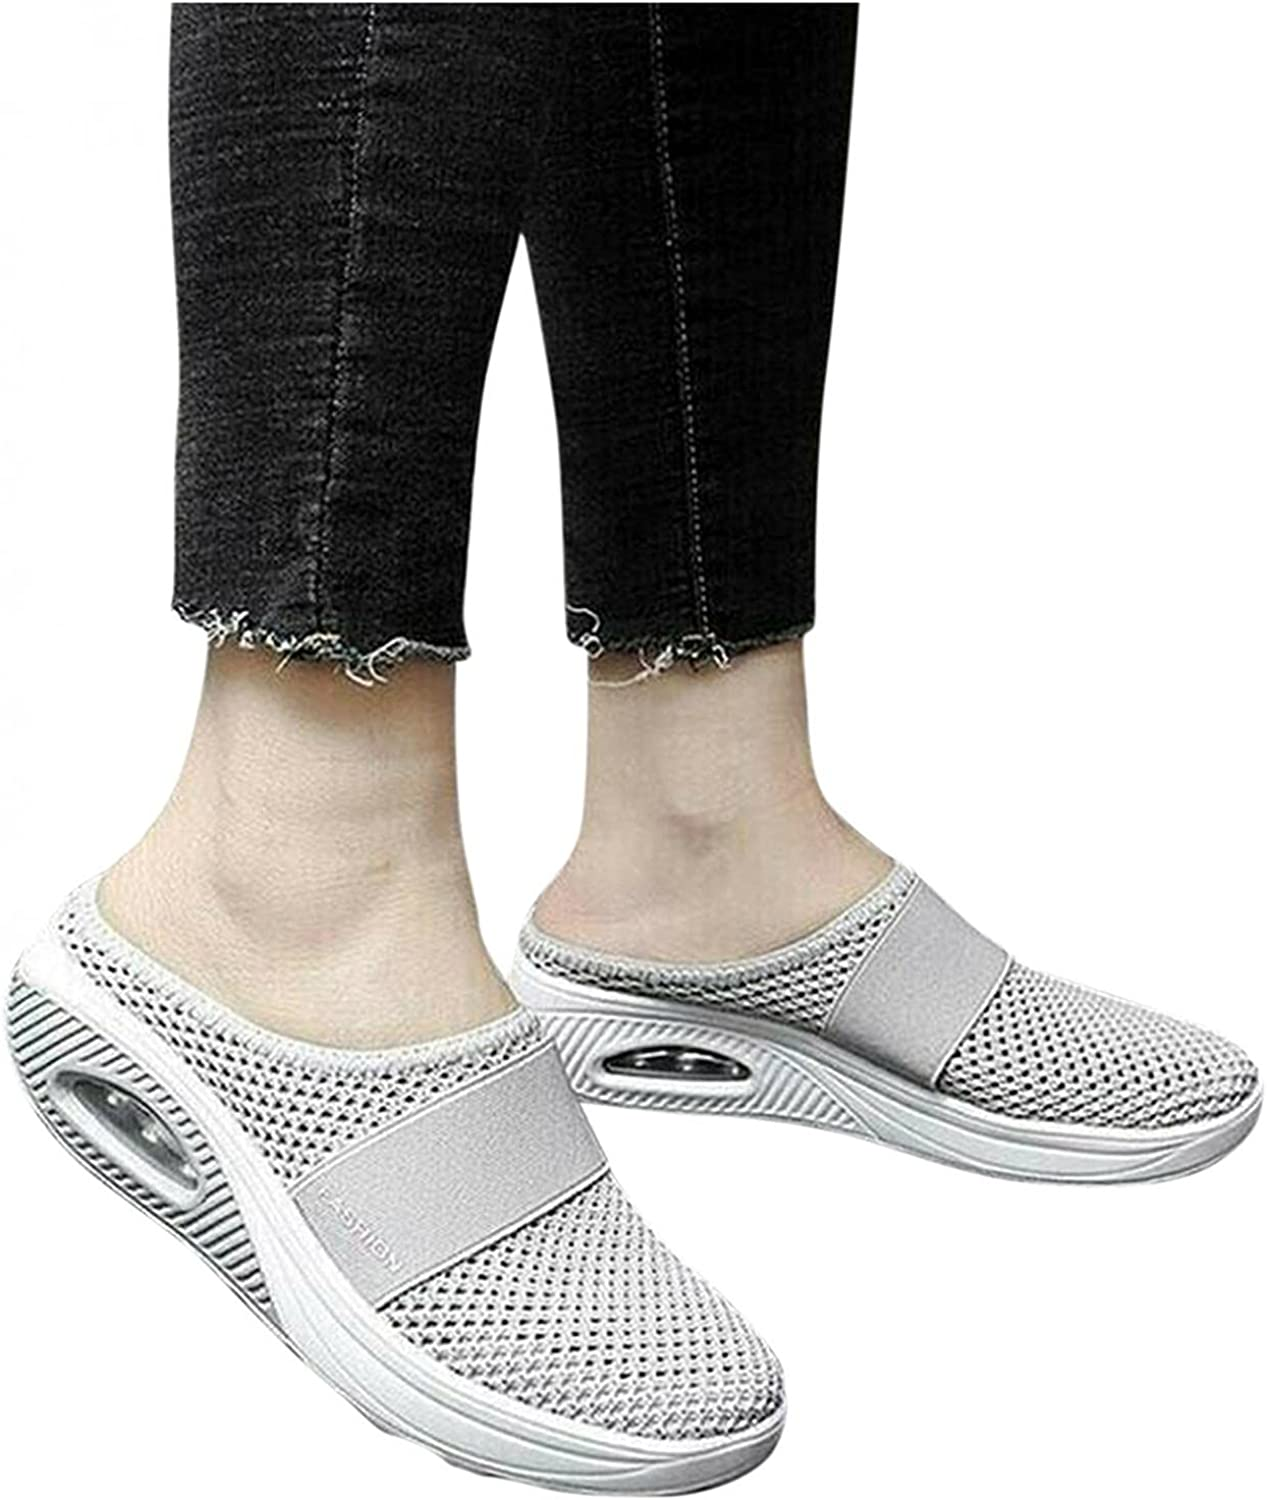 Hbeylia Walking Running Mule Fashion Sneakers For Women Breathable Mesh Air Cushion Slip On Athletic Sport Shoes Fashion Casual Platform Wedge Workout Gym Fitness Slides Work Nurse Sliders Shoes